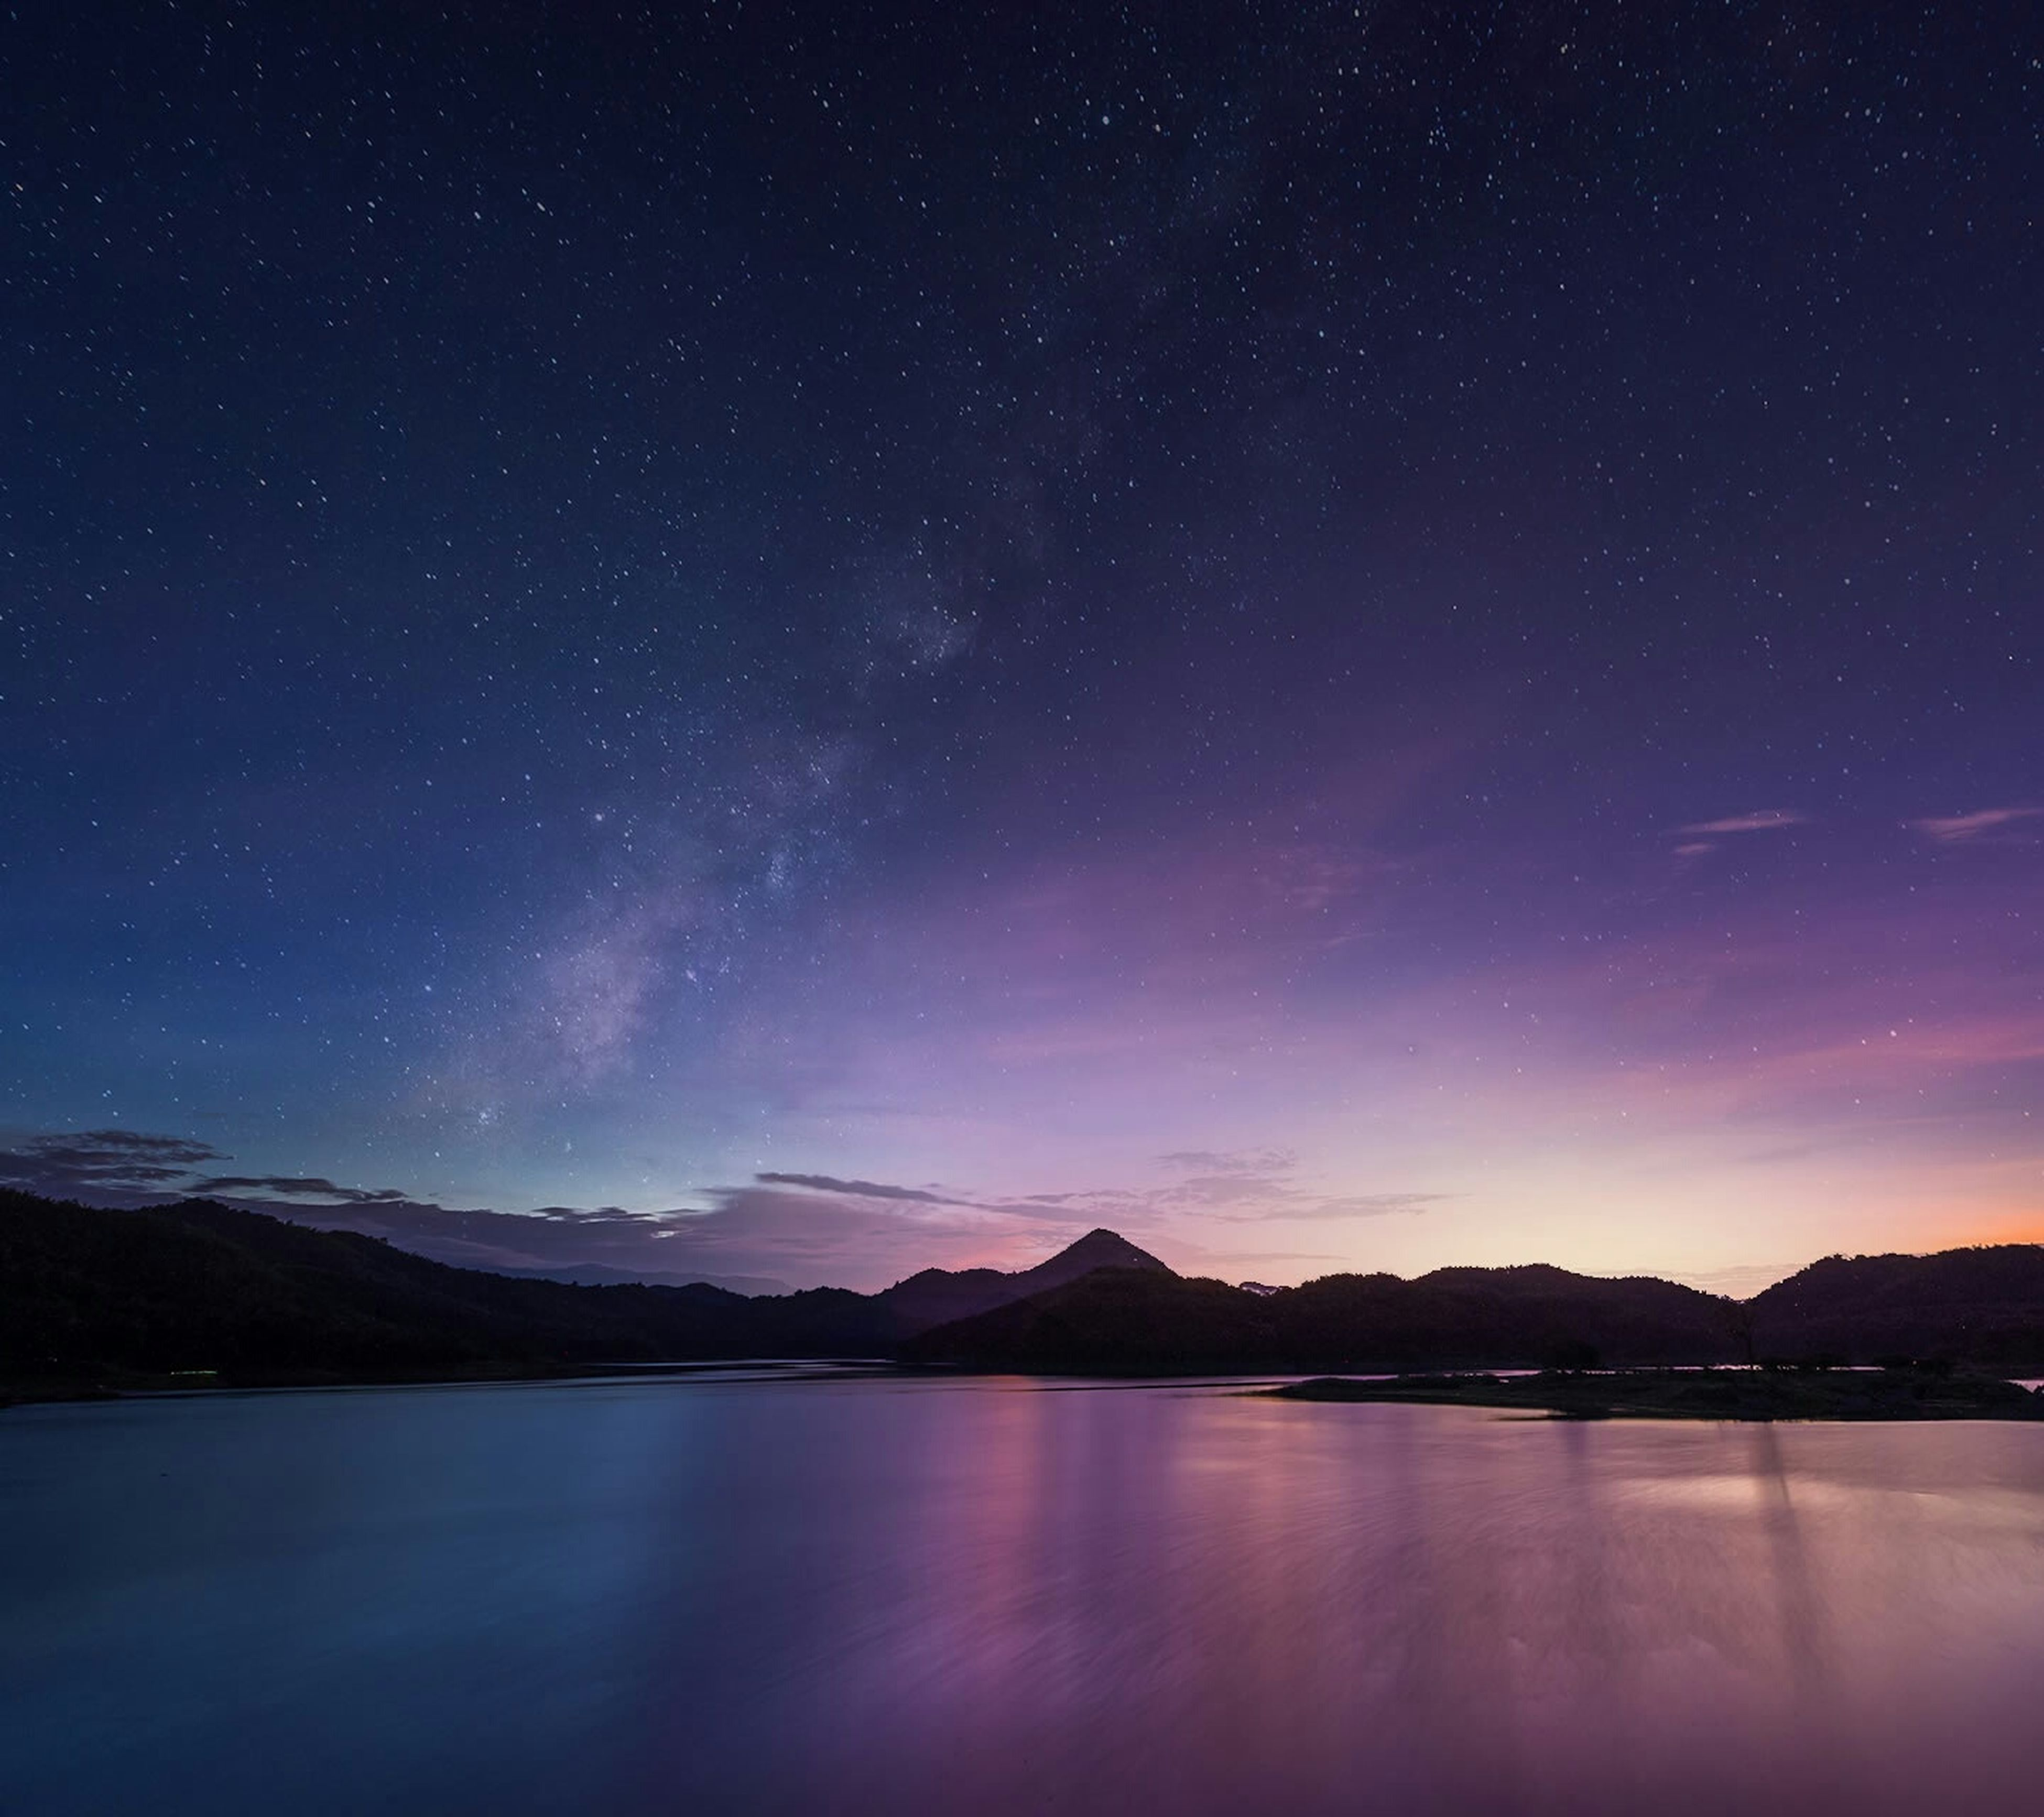 night, scenics, tranquil scene, star - space, tranquility, beauty in nature, star field, astronomy, sky, water, nature, idyllic, mountain, galaxy, majestic, space, star, lake, mountain range, reflection